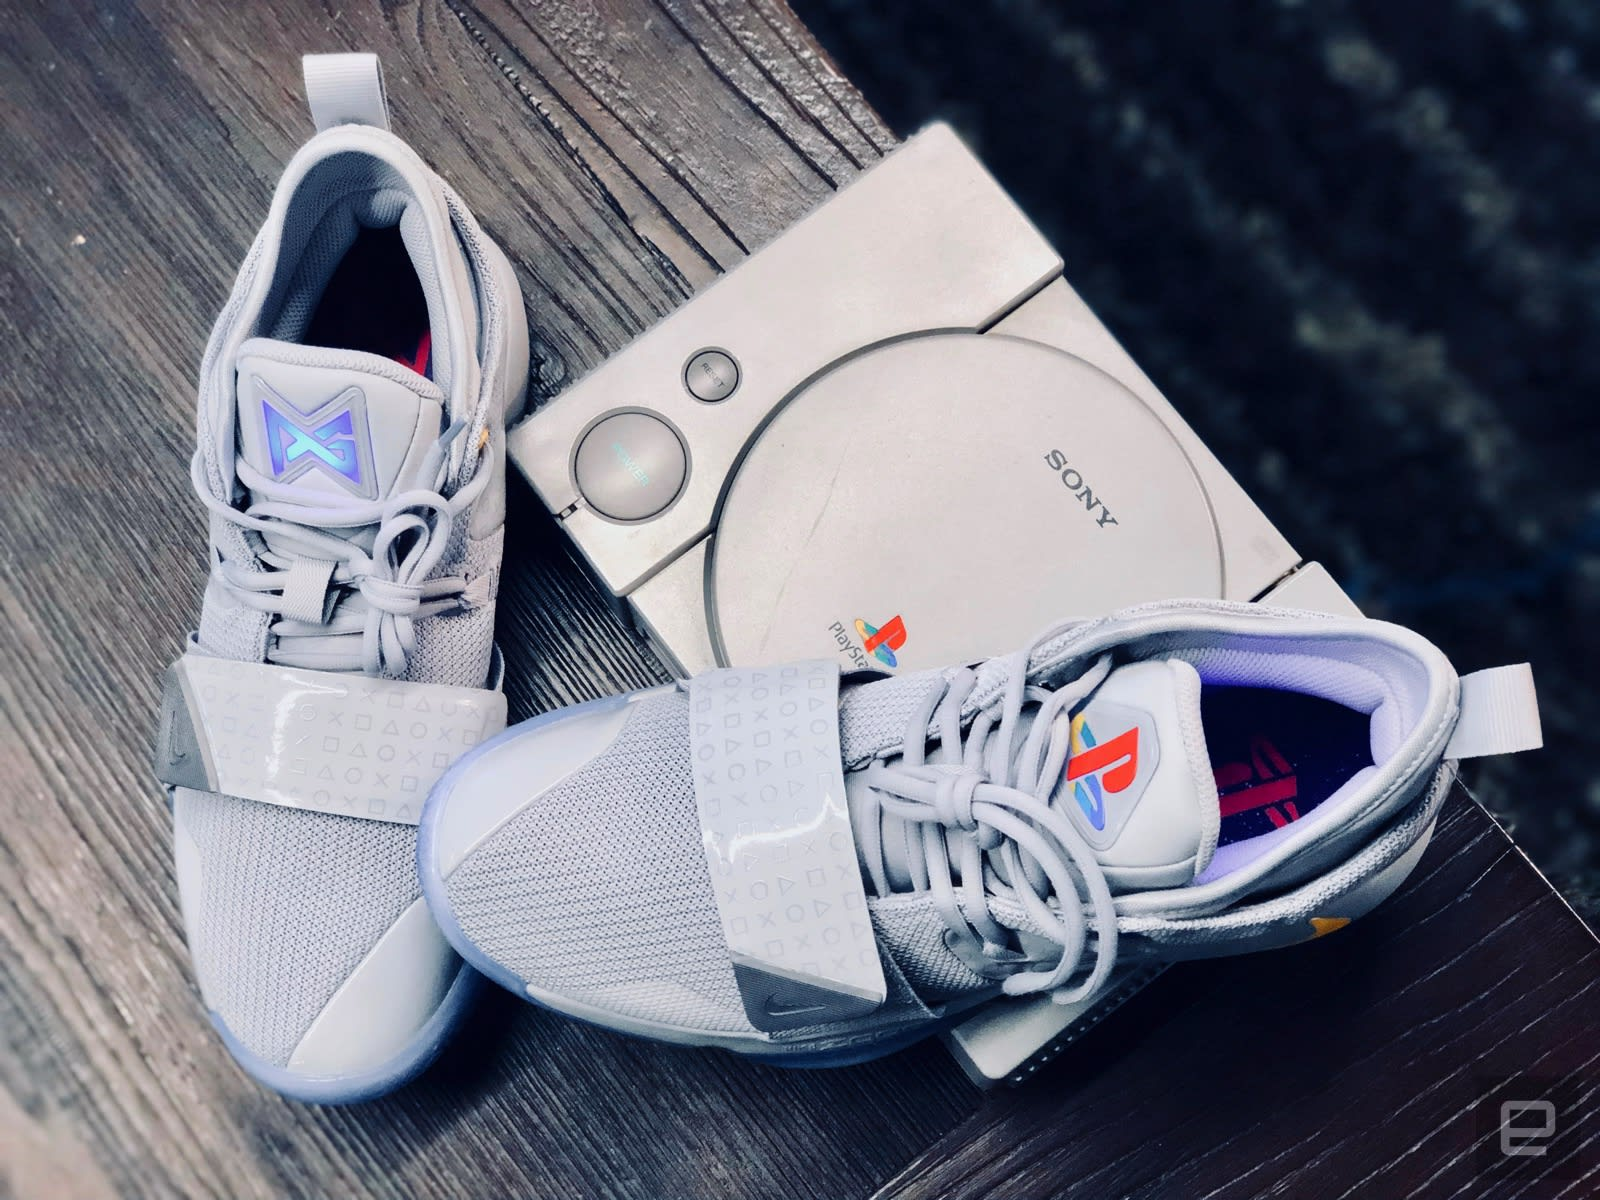 best sneakers 38cf5 aca08 Nike's new PlayStation sneakers pay homage to Sony's classic ...